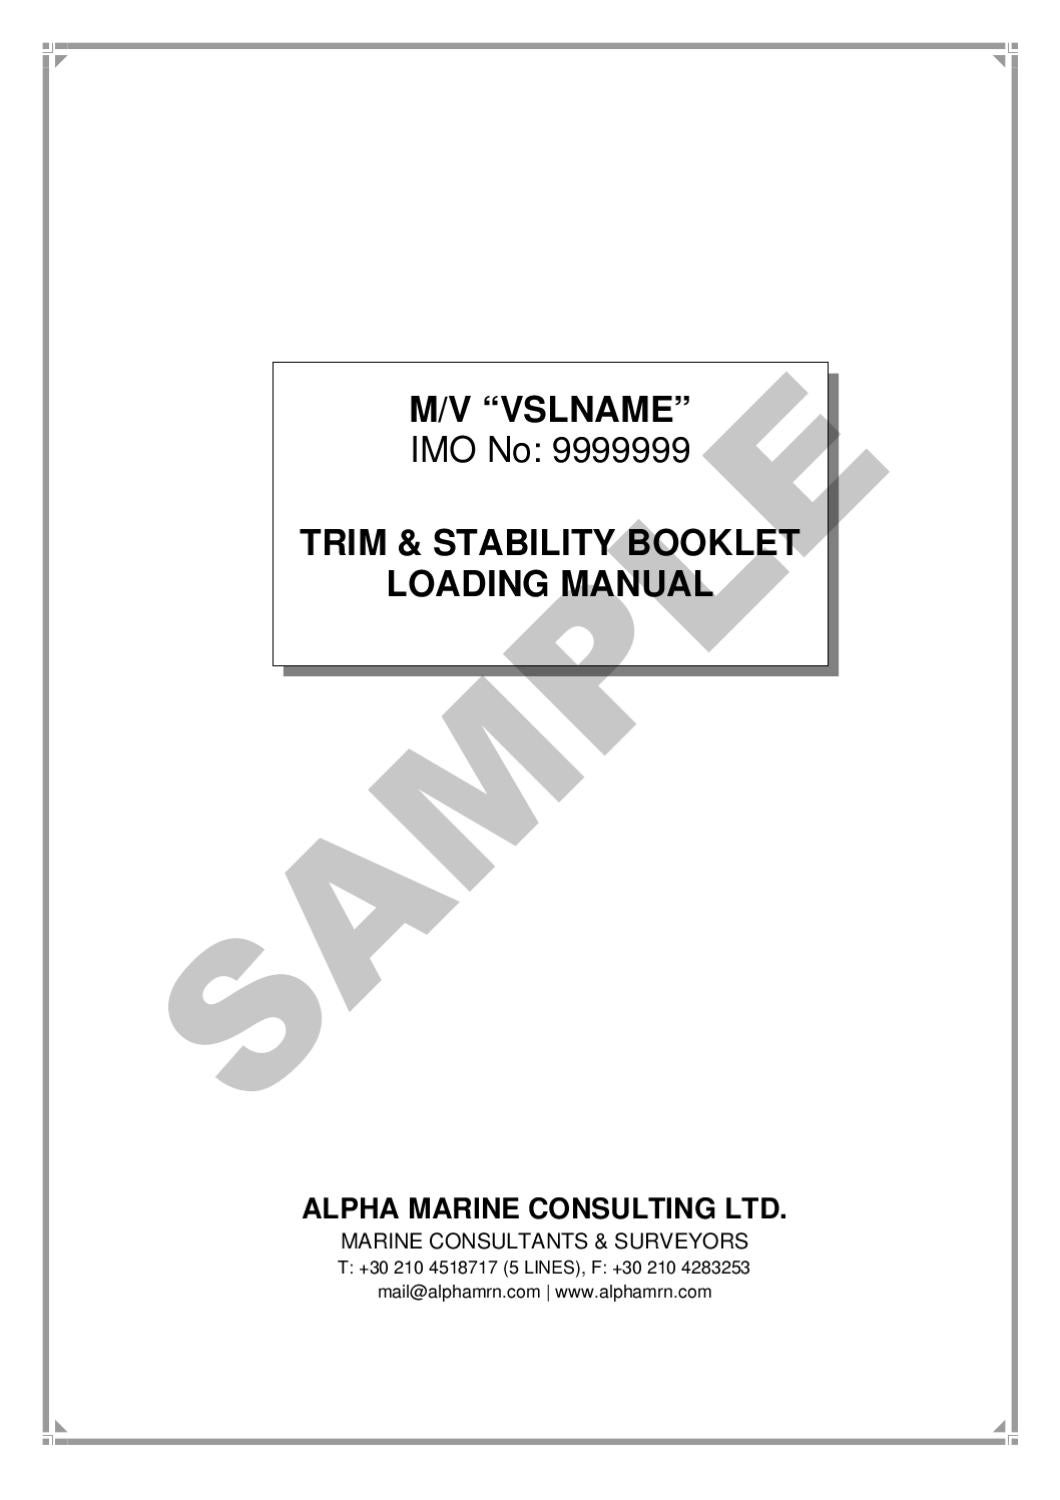 TRIM & STABILITY BOOKLET - LOADING MANUAL SAMPLE by Alpha Marine